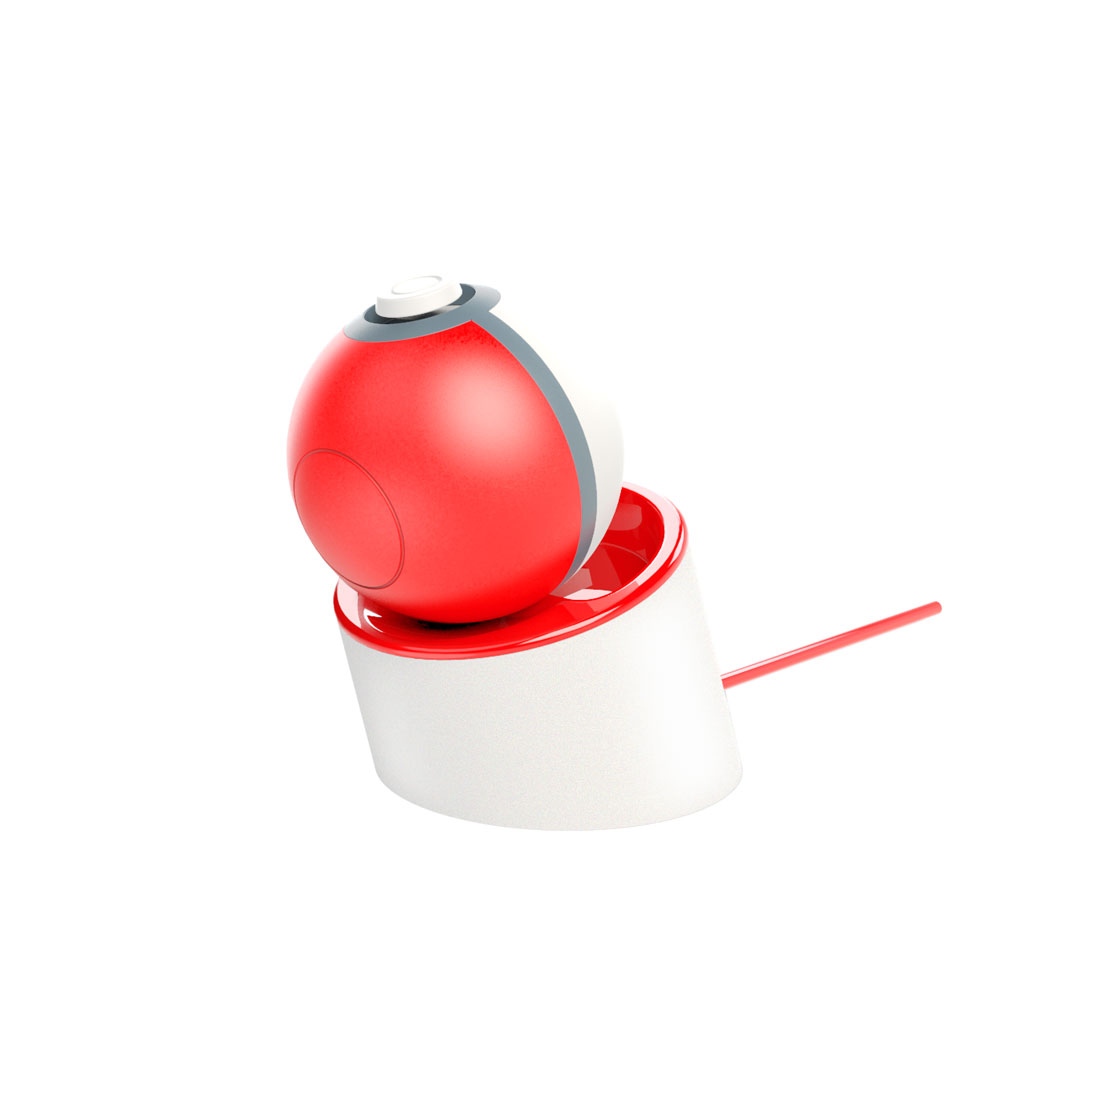 pokeball-charger-w-ball-angle-right-1100x1100